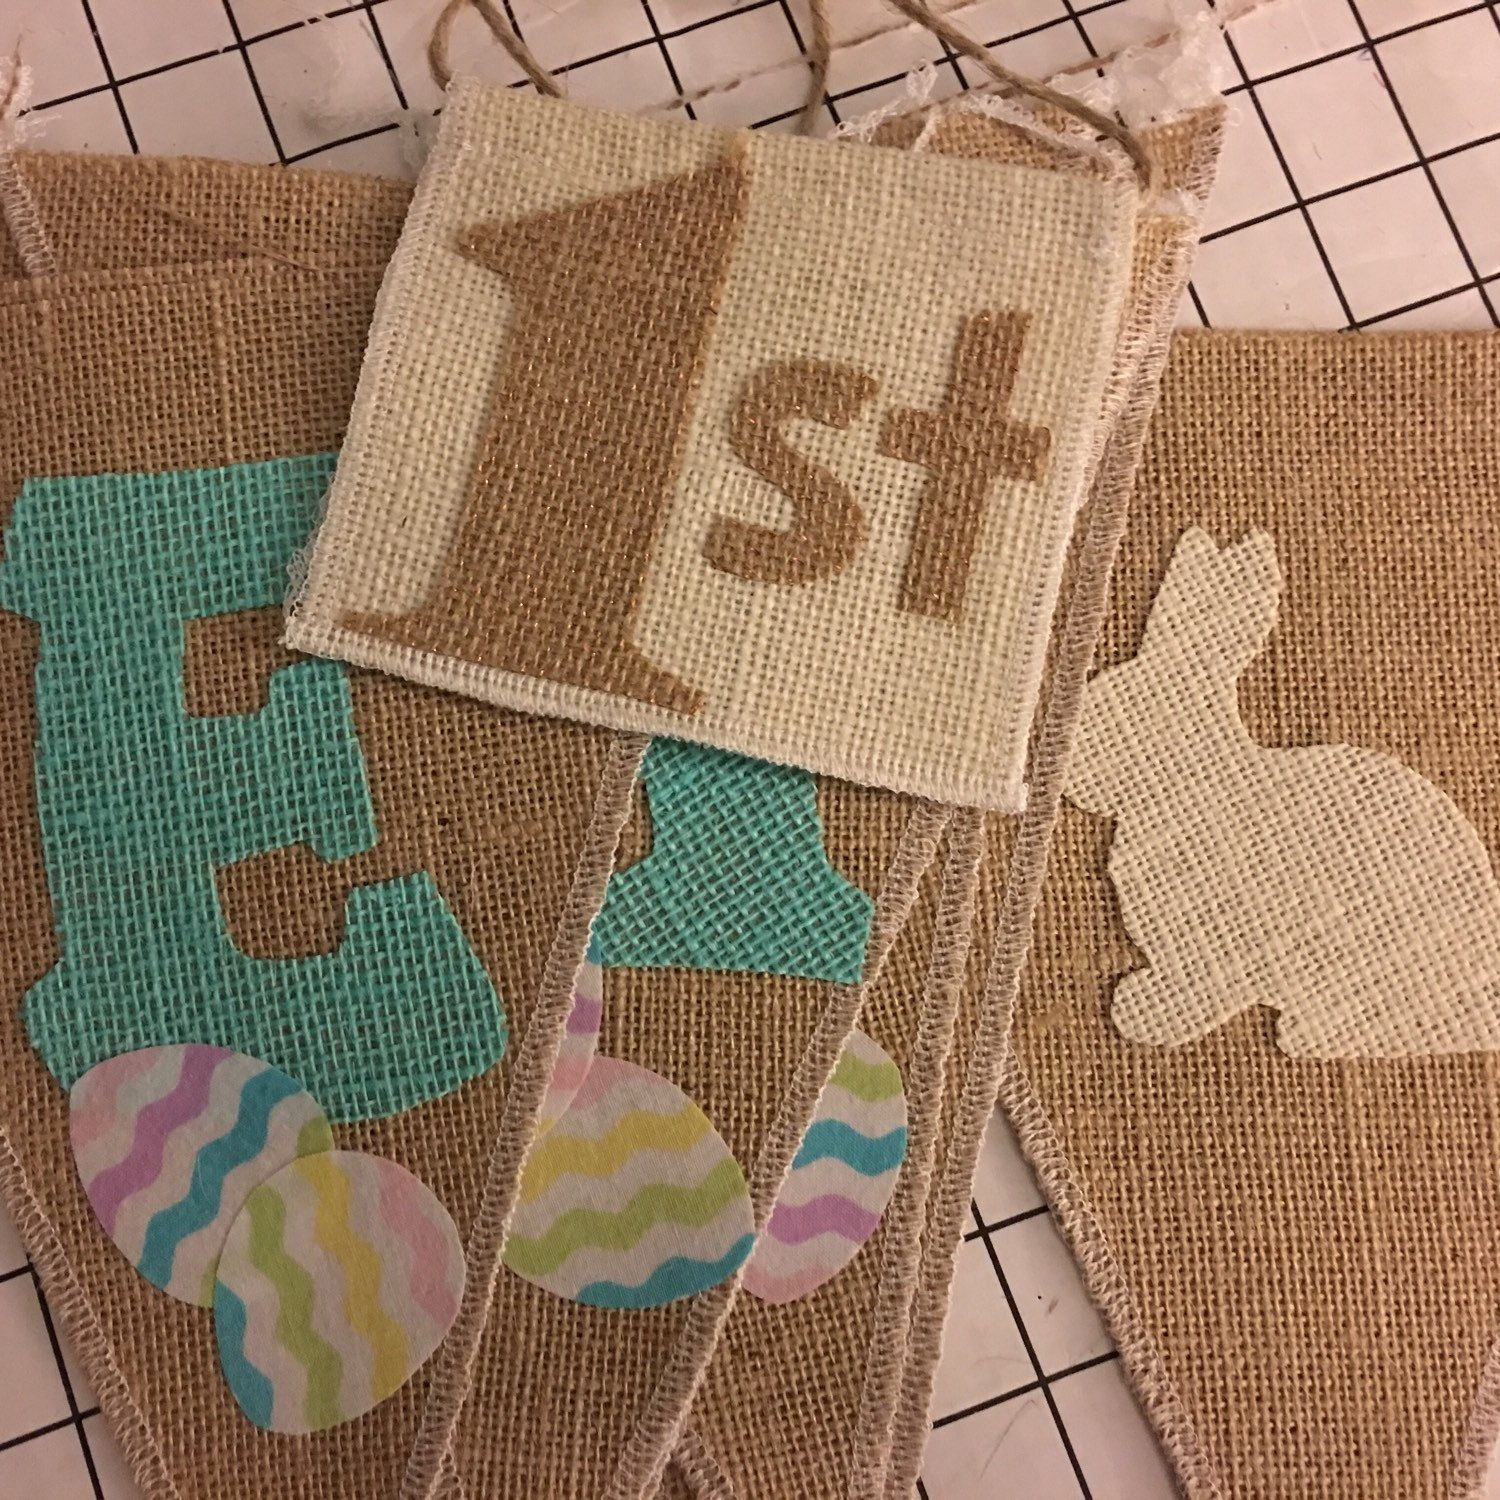 Working on a special request addition to our Easter banner  #babysfirstEaster #1st #1stEaster